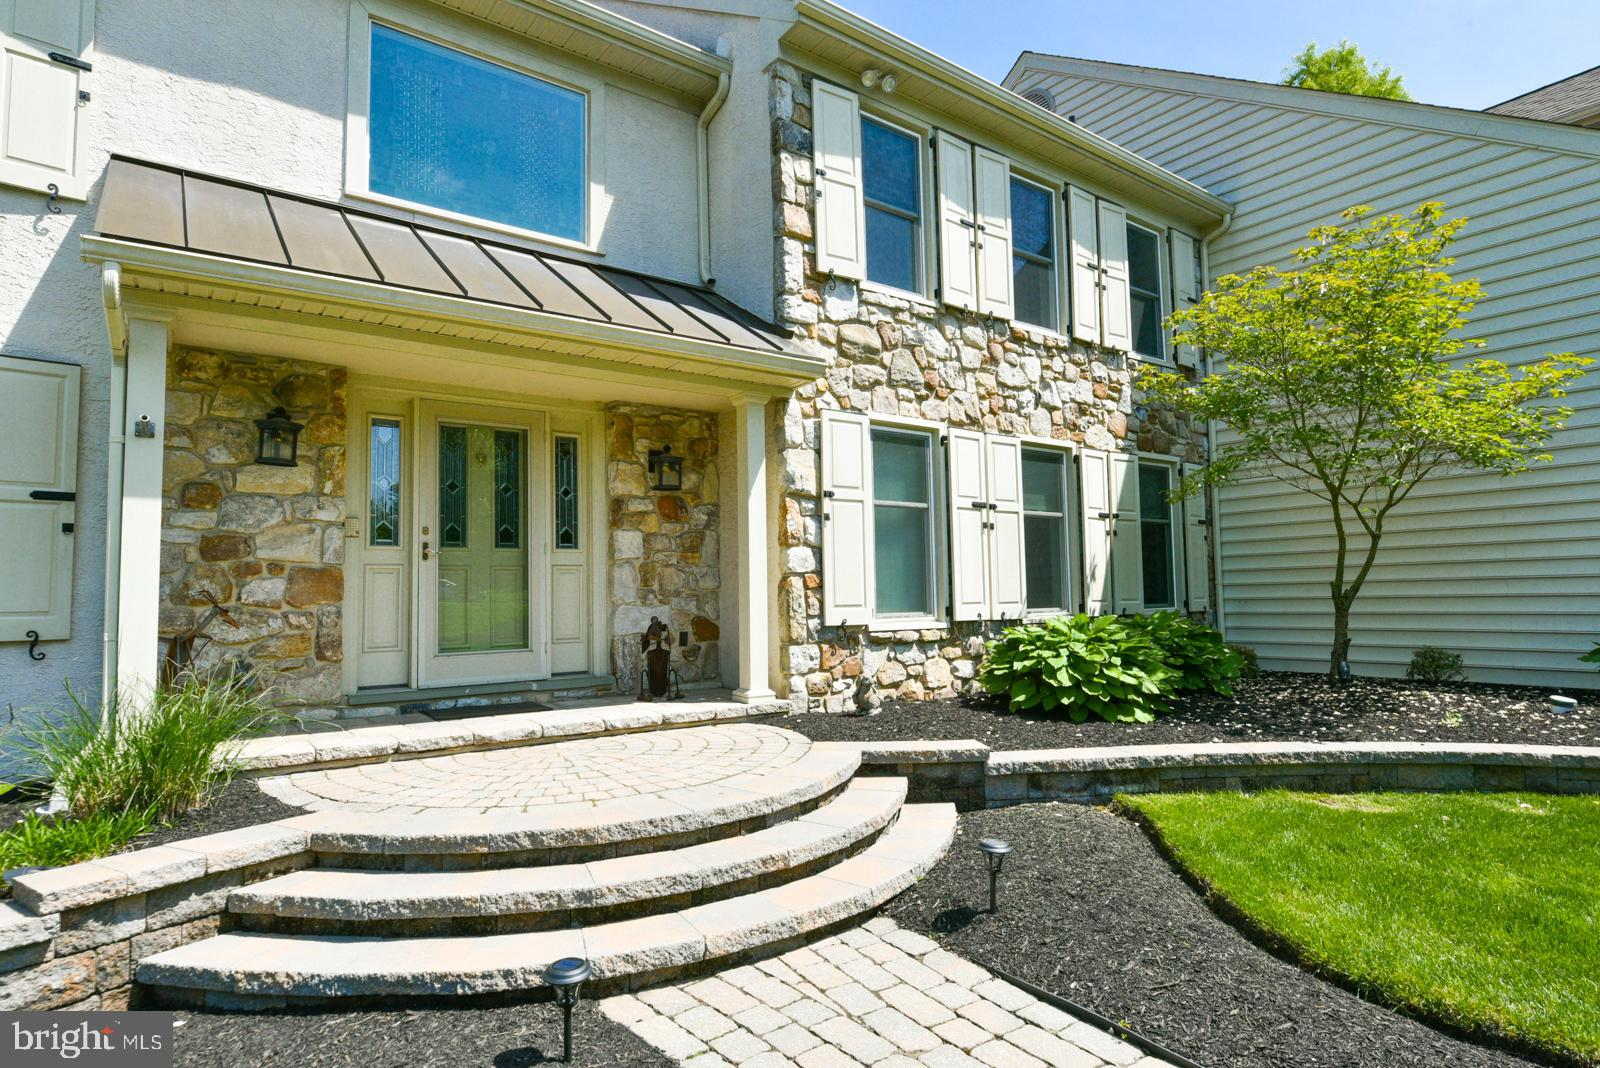 1518 GENERALS WAY, WEST CHESTER, PA 19380